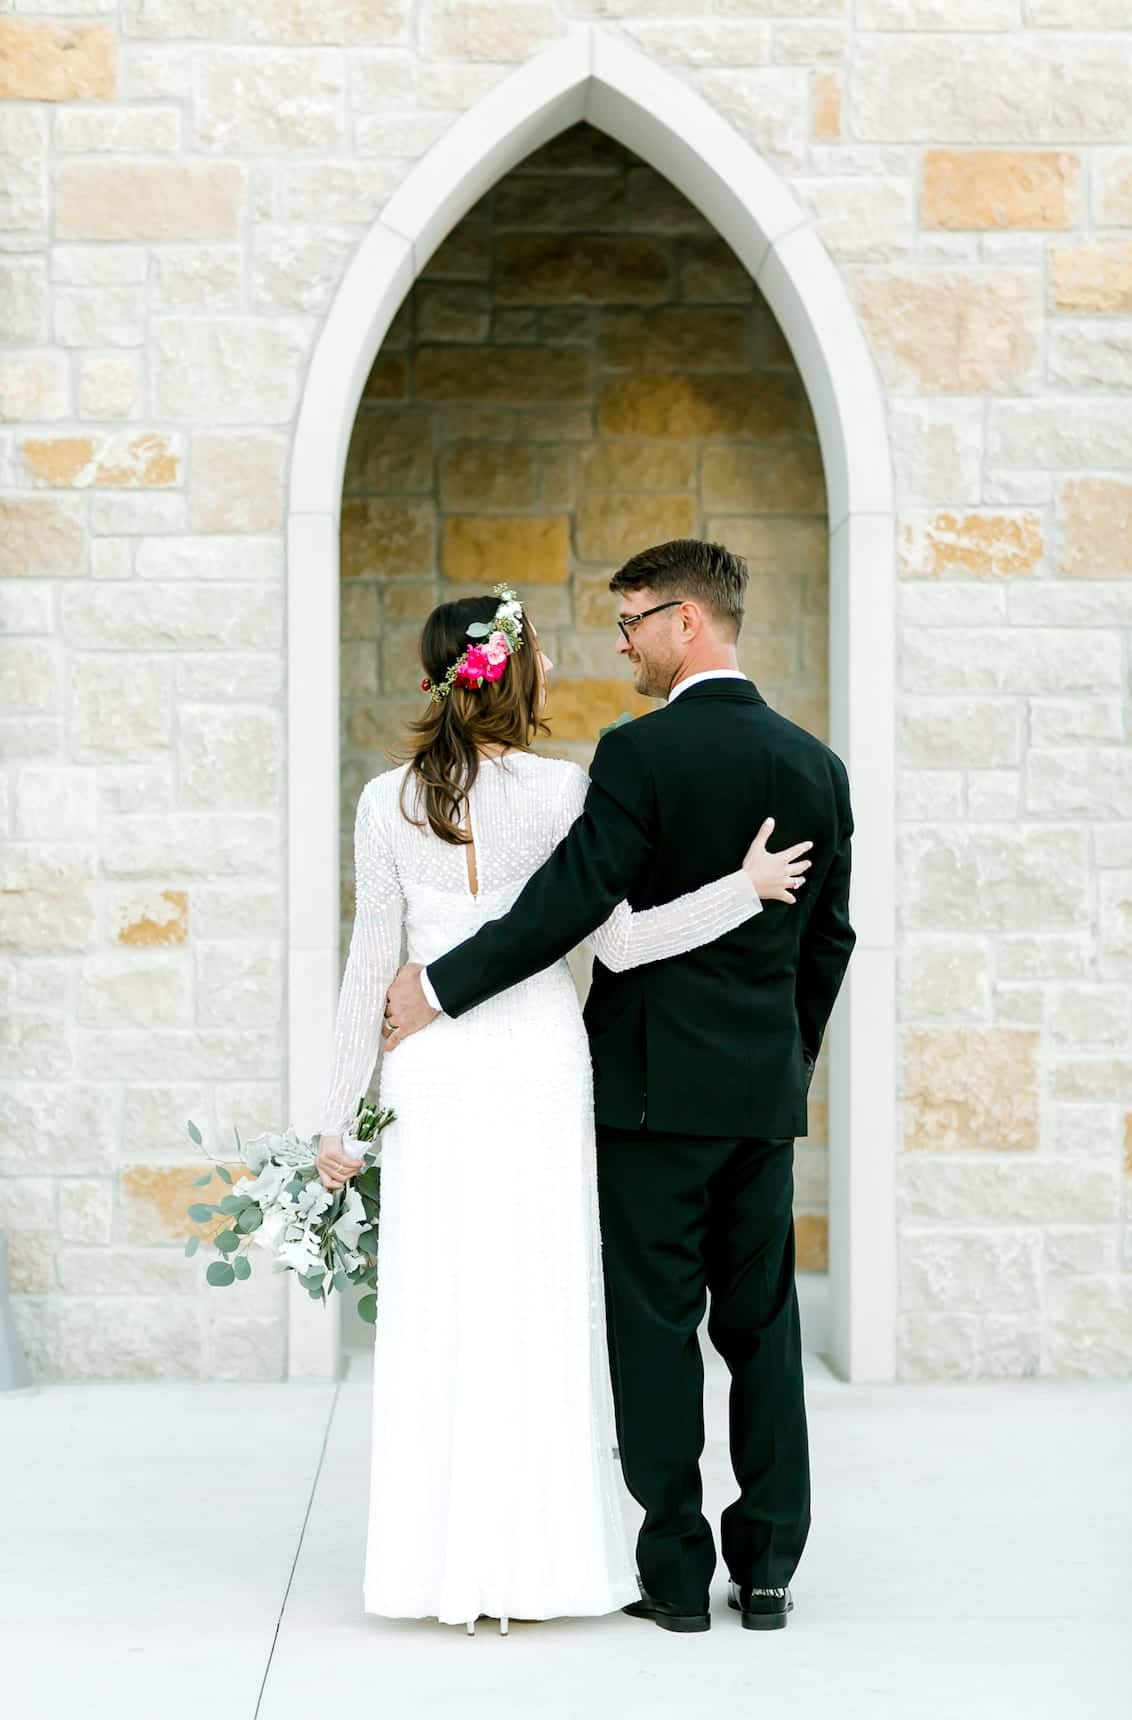 View More: http://anastasiastrate.pass.us/carmen-and-leonard-wedding-1